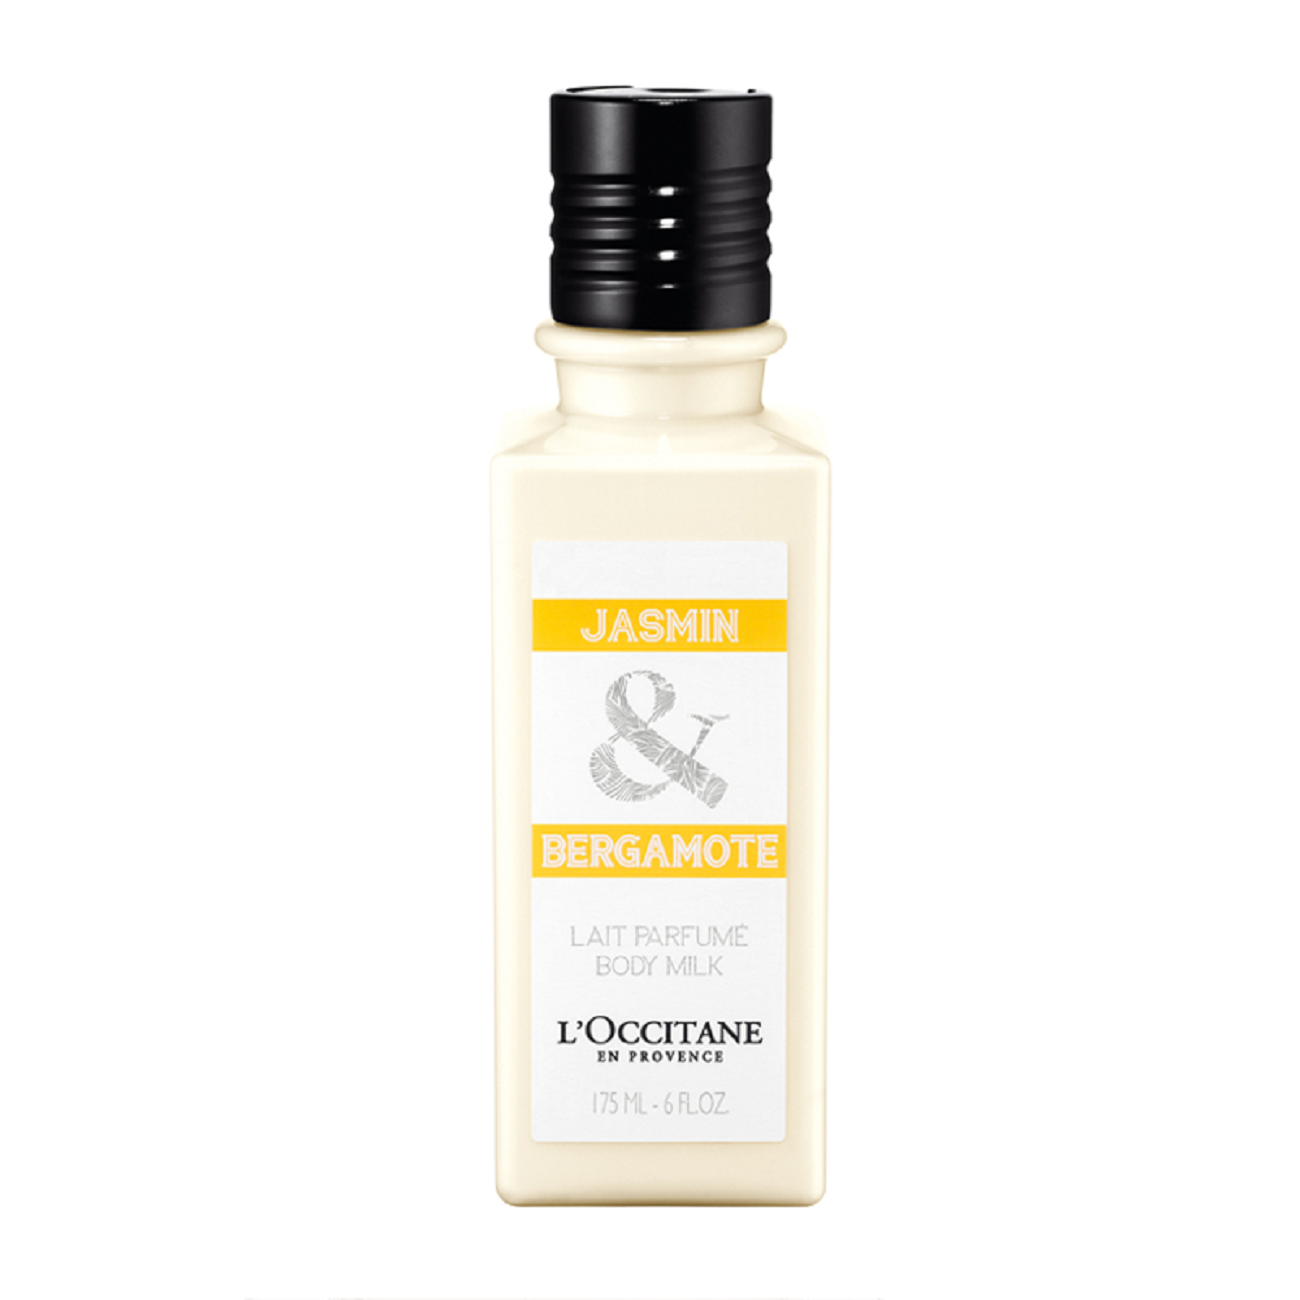 Jasmin & Bergamote Body Milk 175 Ml L`Occitane en Provence imagine 2021 bestvalue.eu